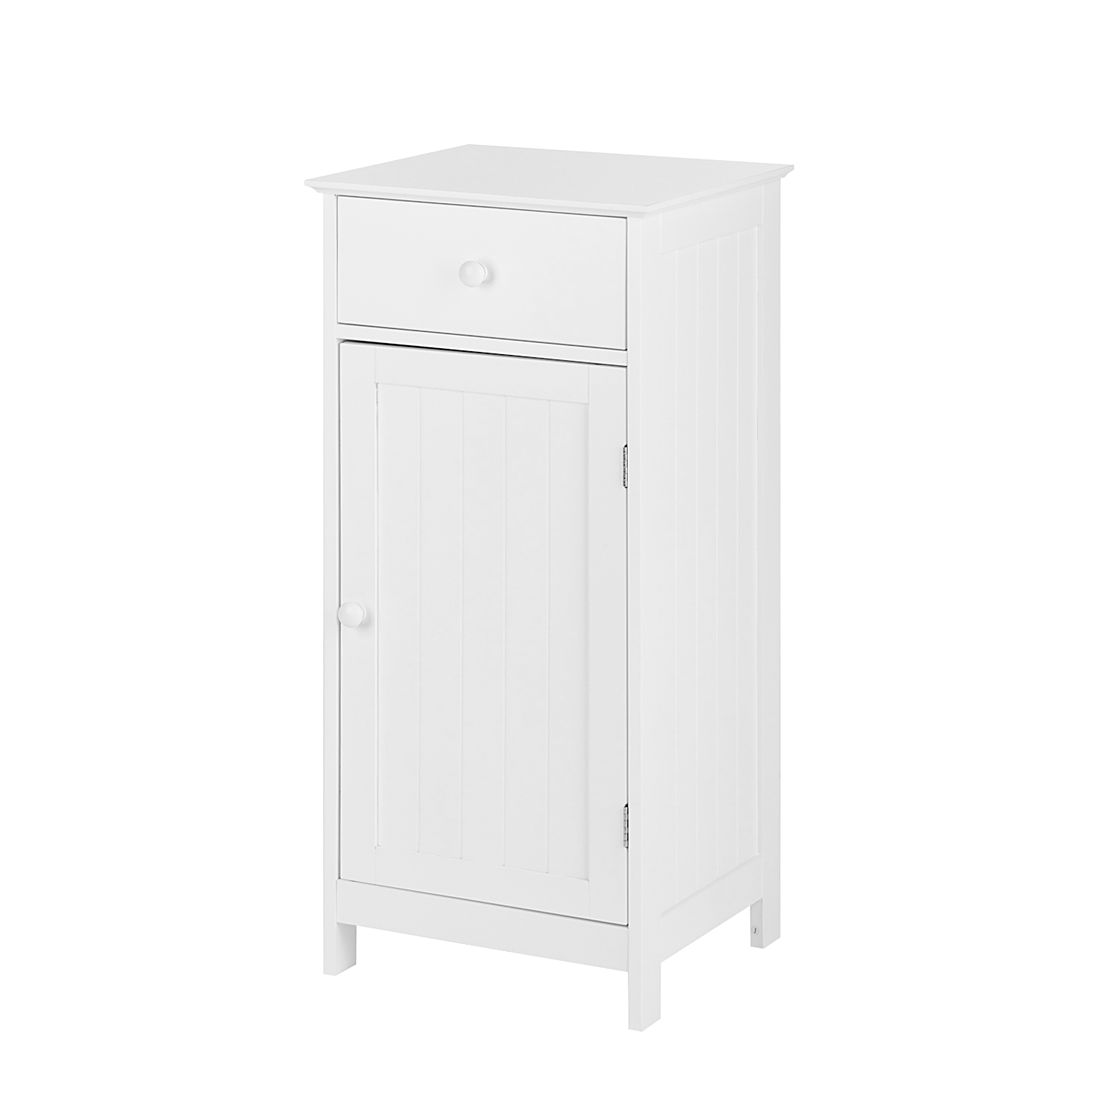 Commode Turin - Blanche, mooved